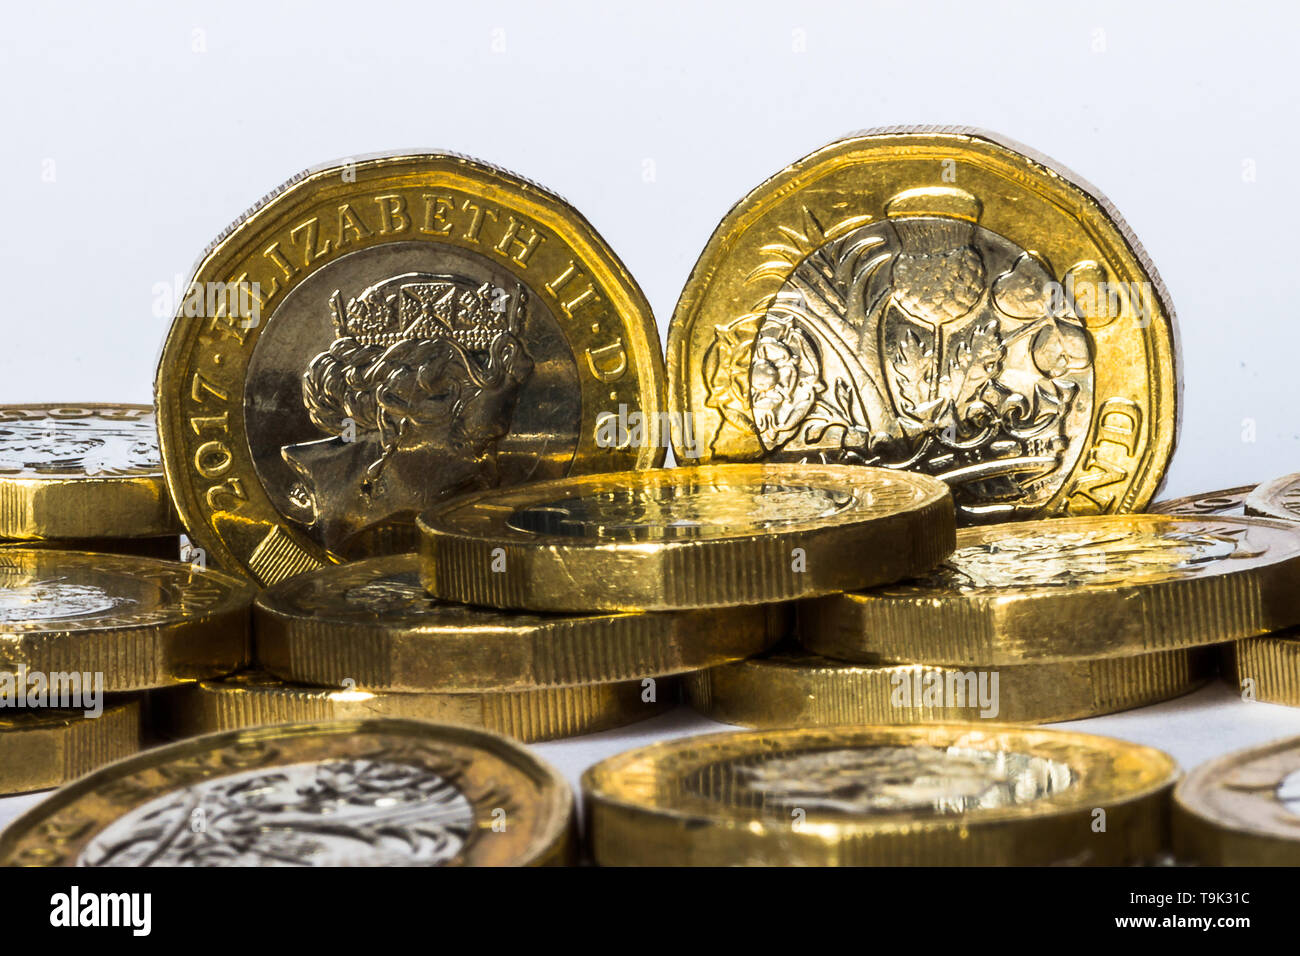 Pound coins in a pile. - Stock Image